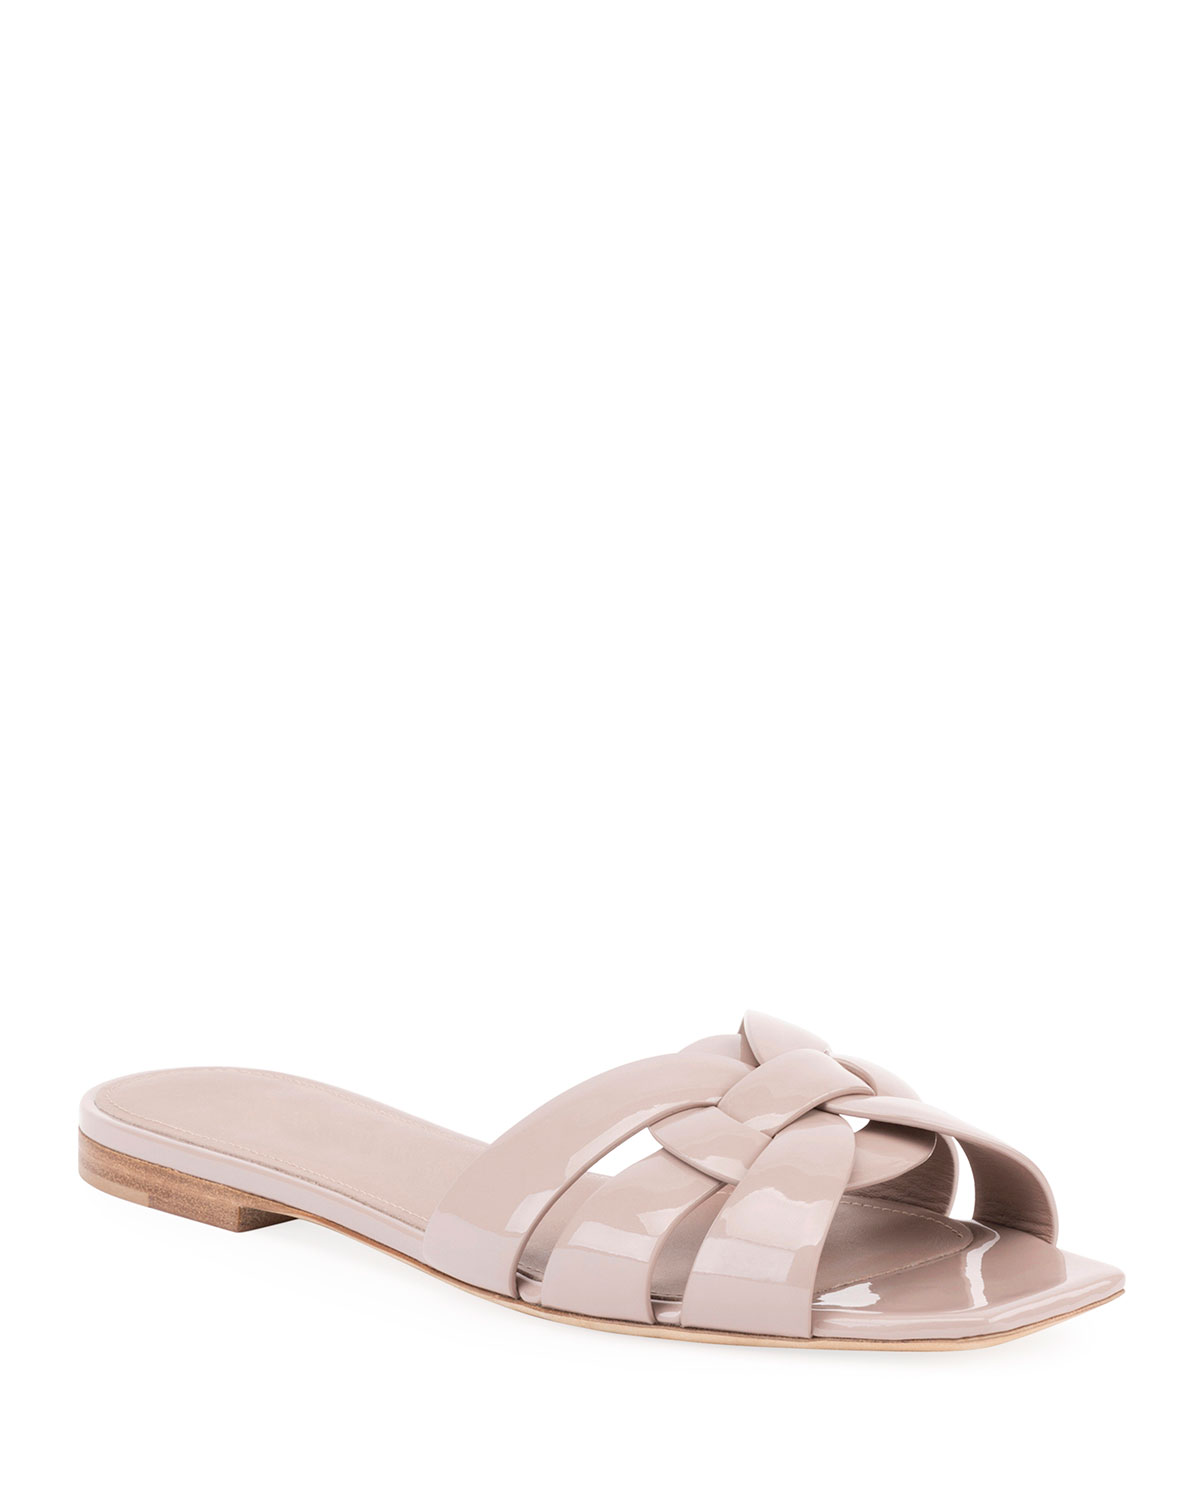 d87eef5299f Tribute Patent Leather Flat Slide Sandals